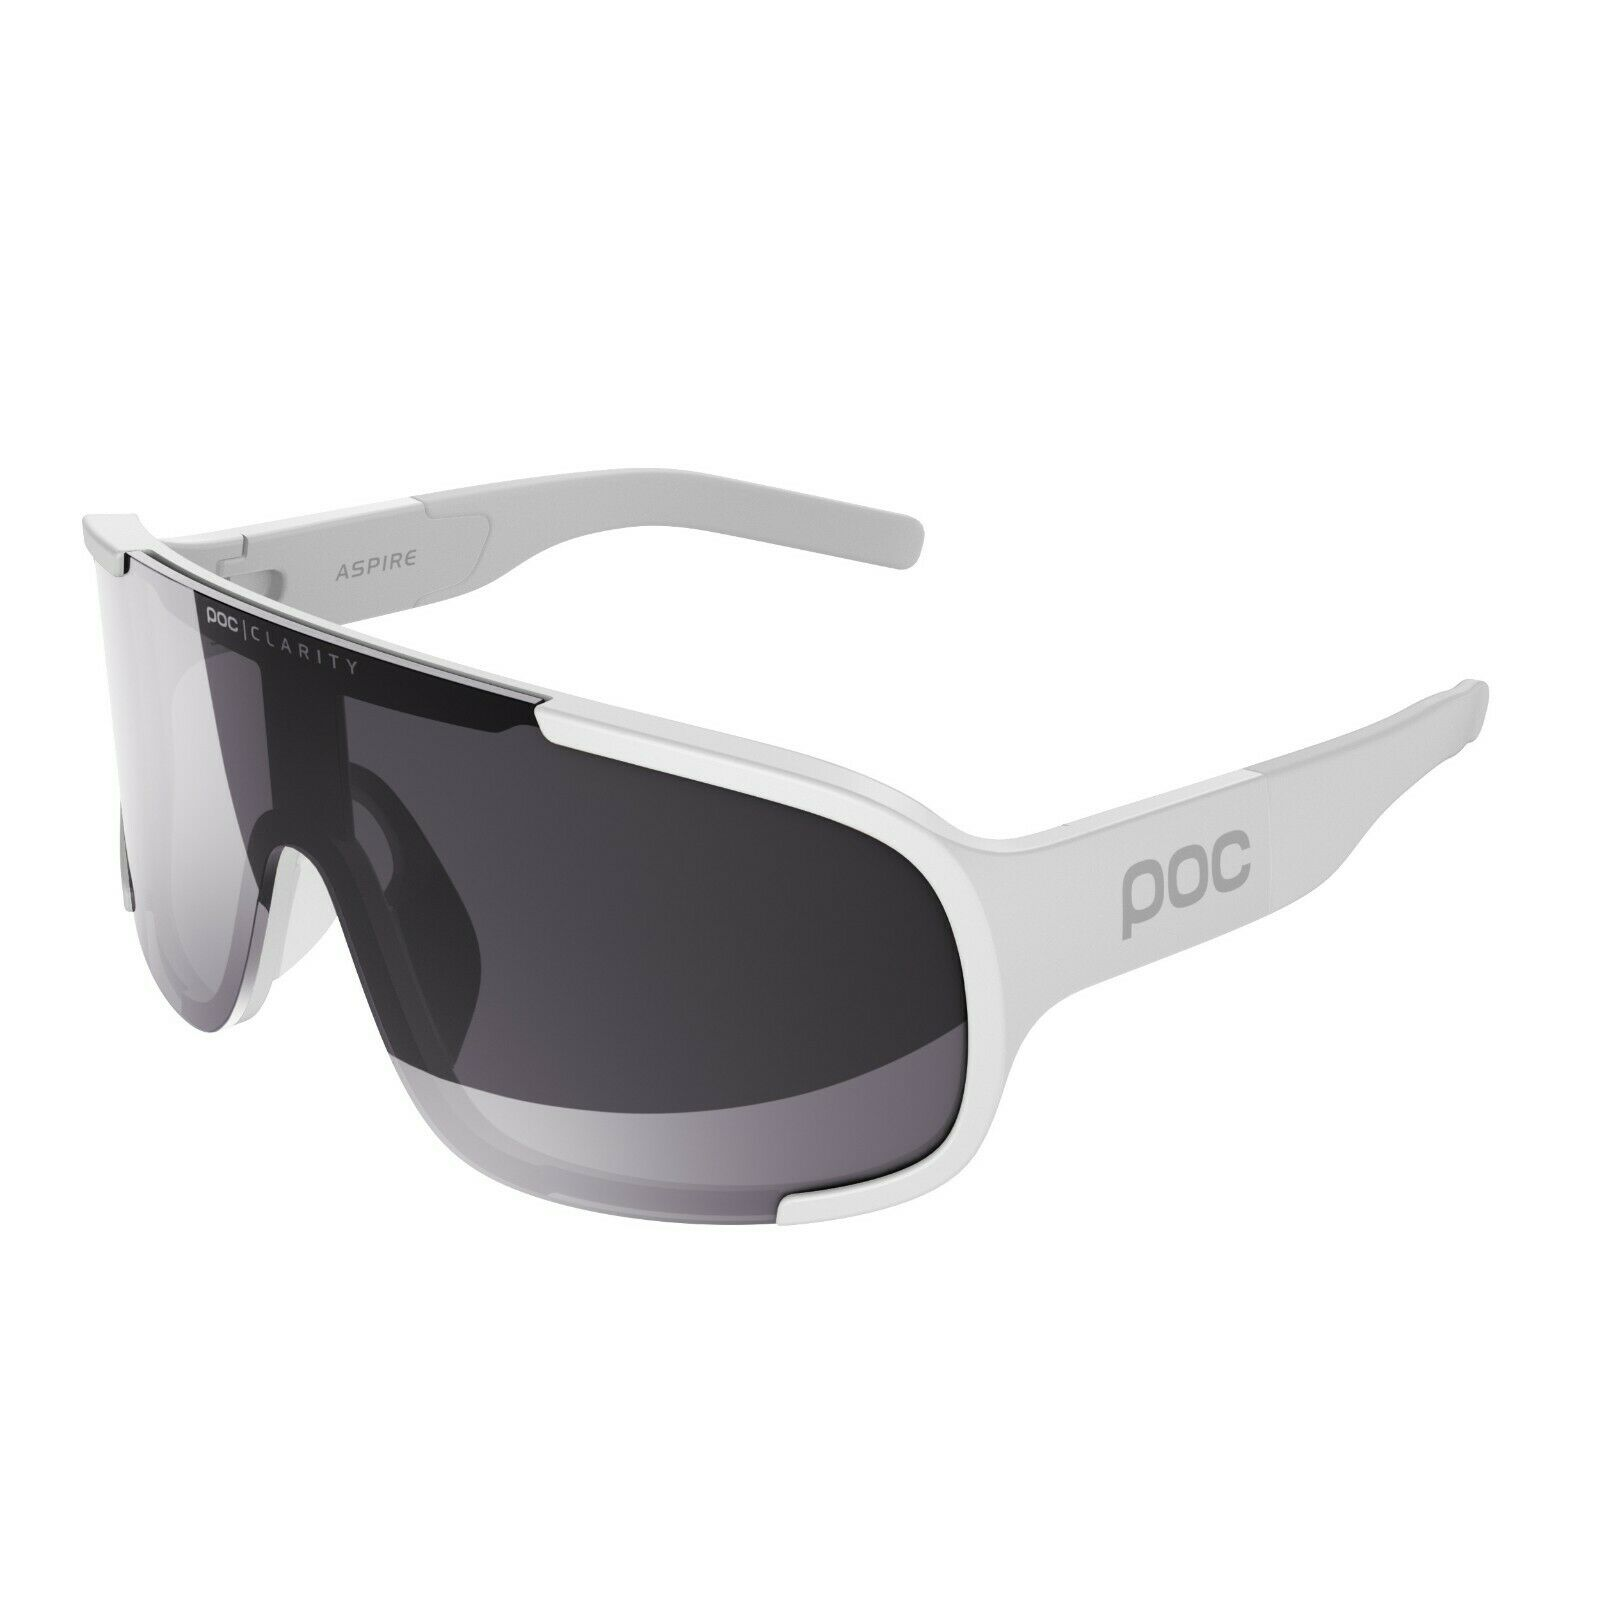 POC ASPIRE  PERFORMANCE HYDROGEN Weiß CLARITY 2019 GLASSES